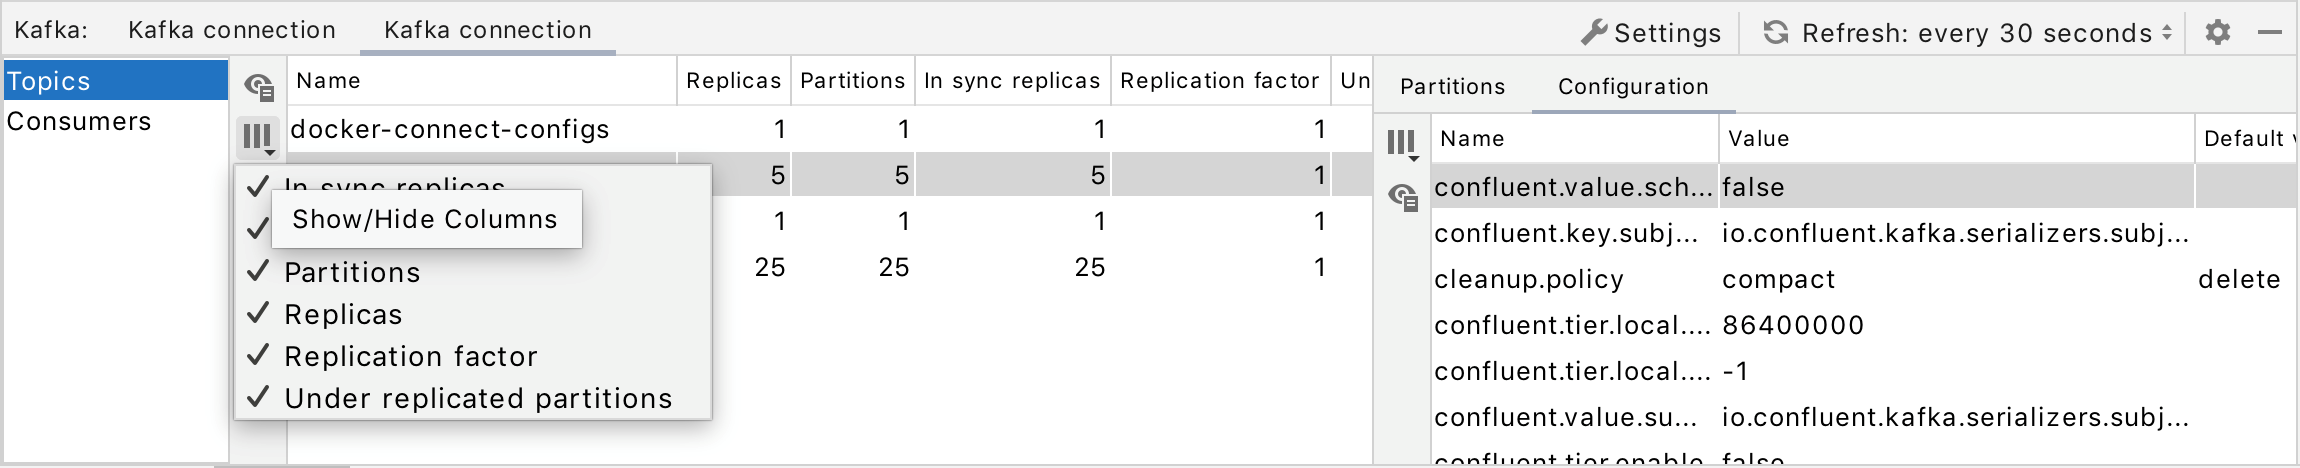 Select columns to show in the table